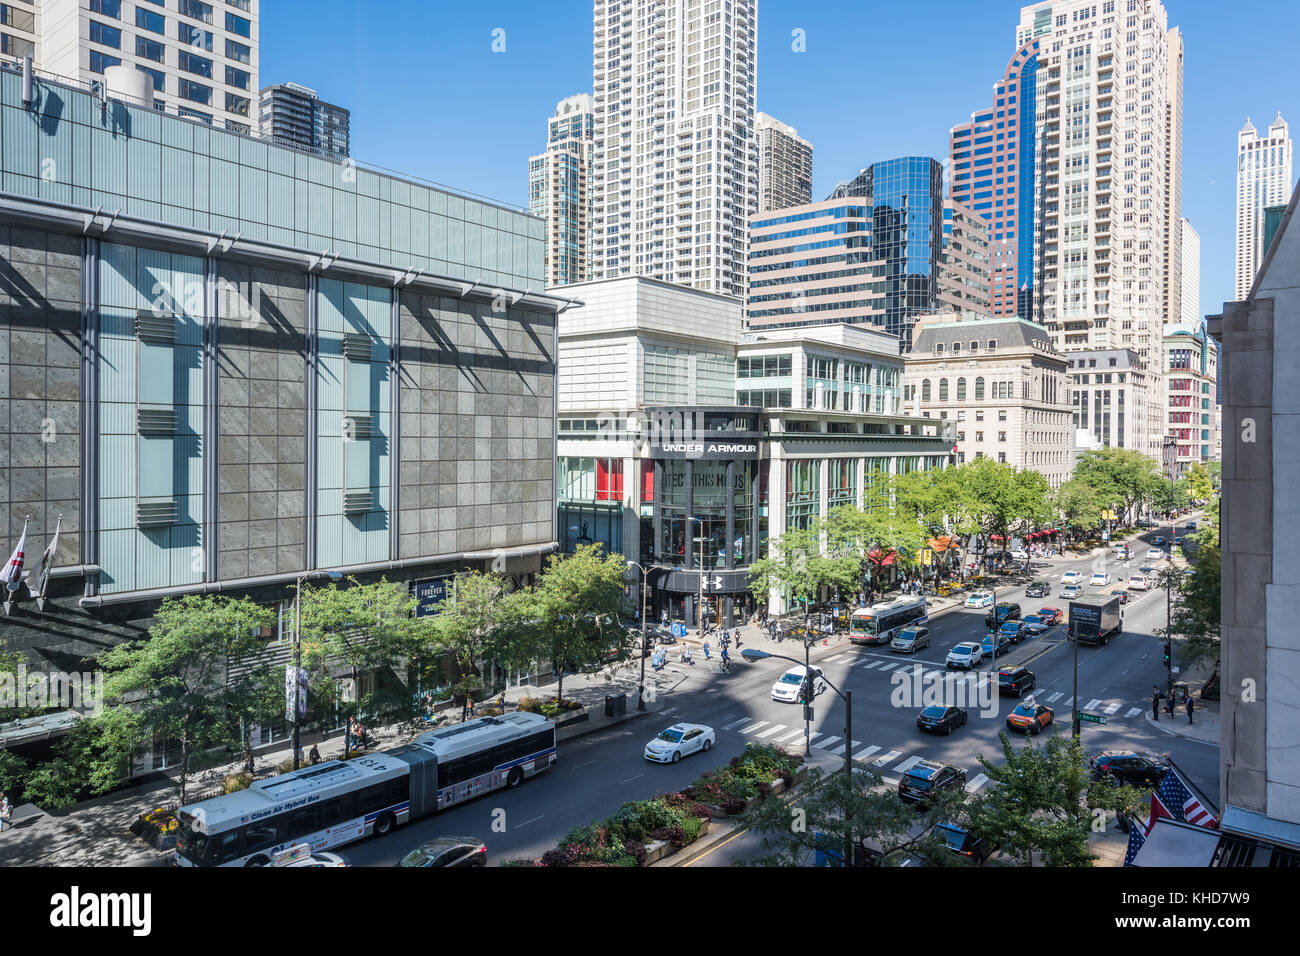 View of Michigan Avenue Magnificent Mile shopping district. - Stock Image